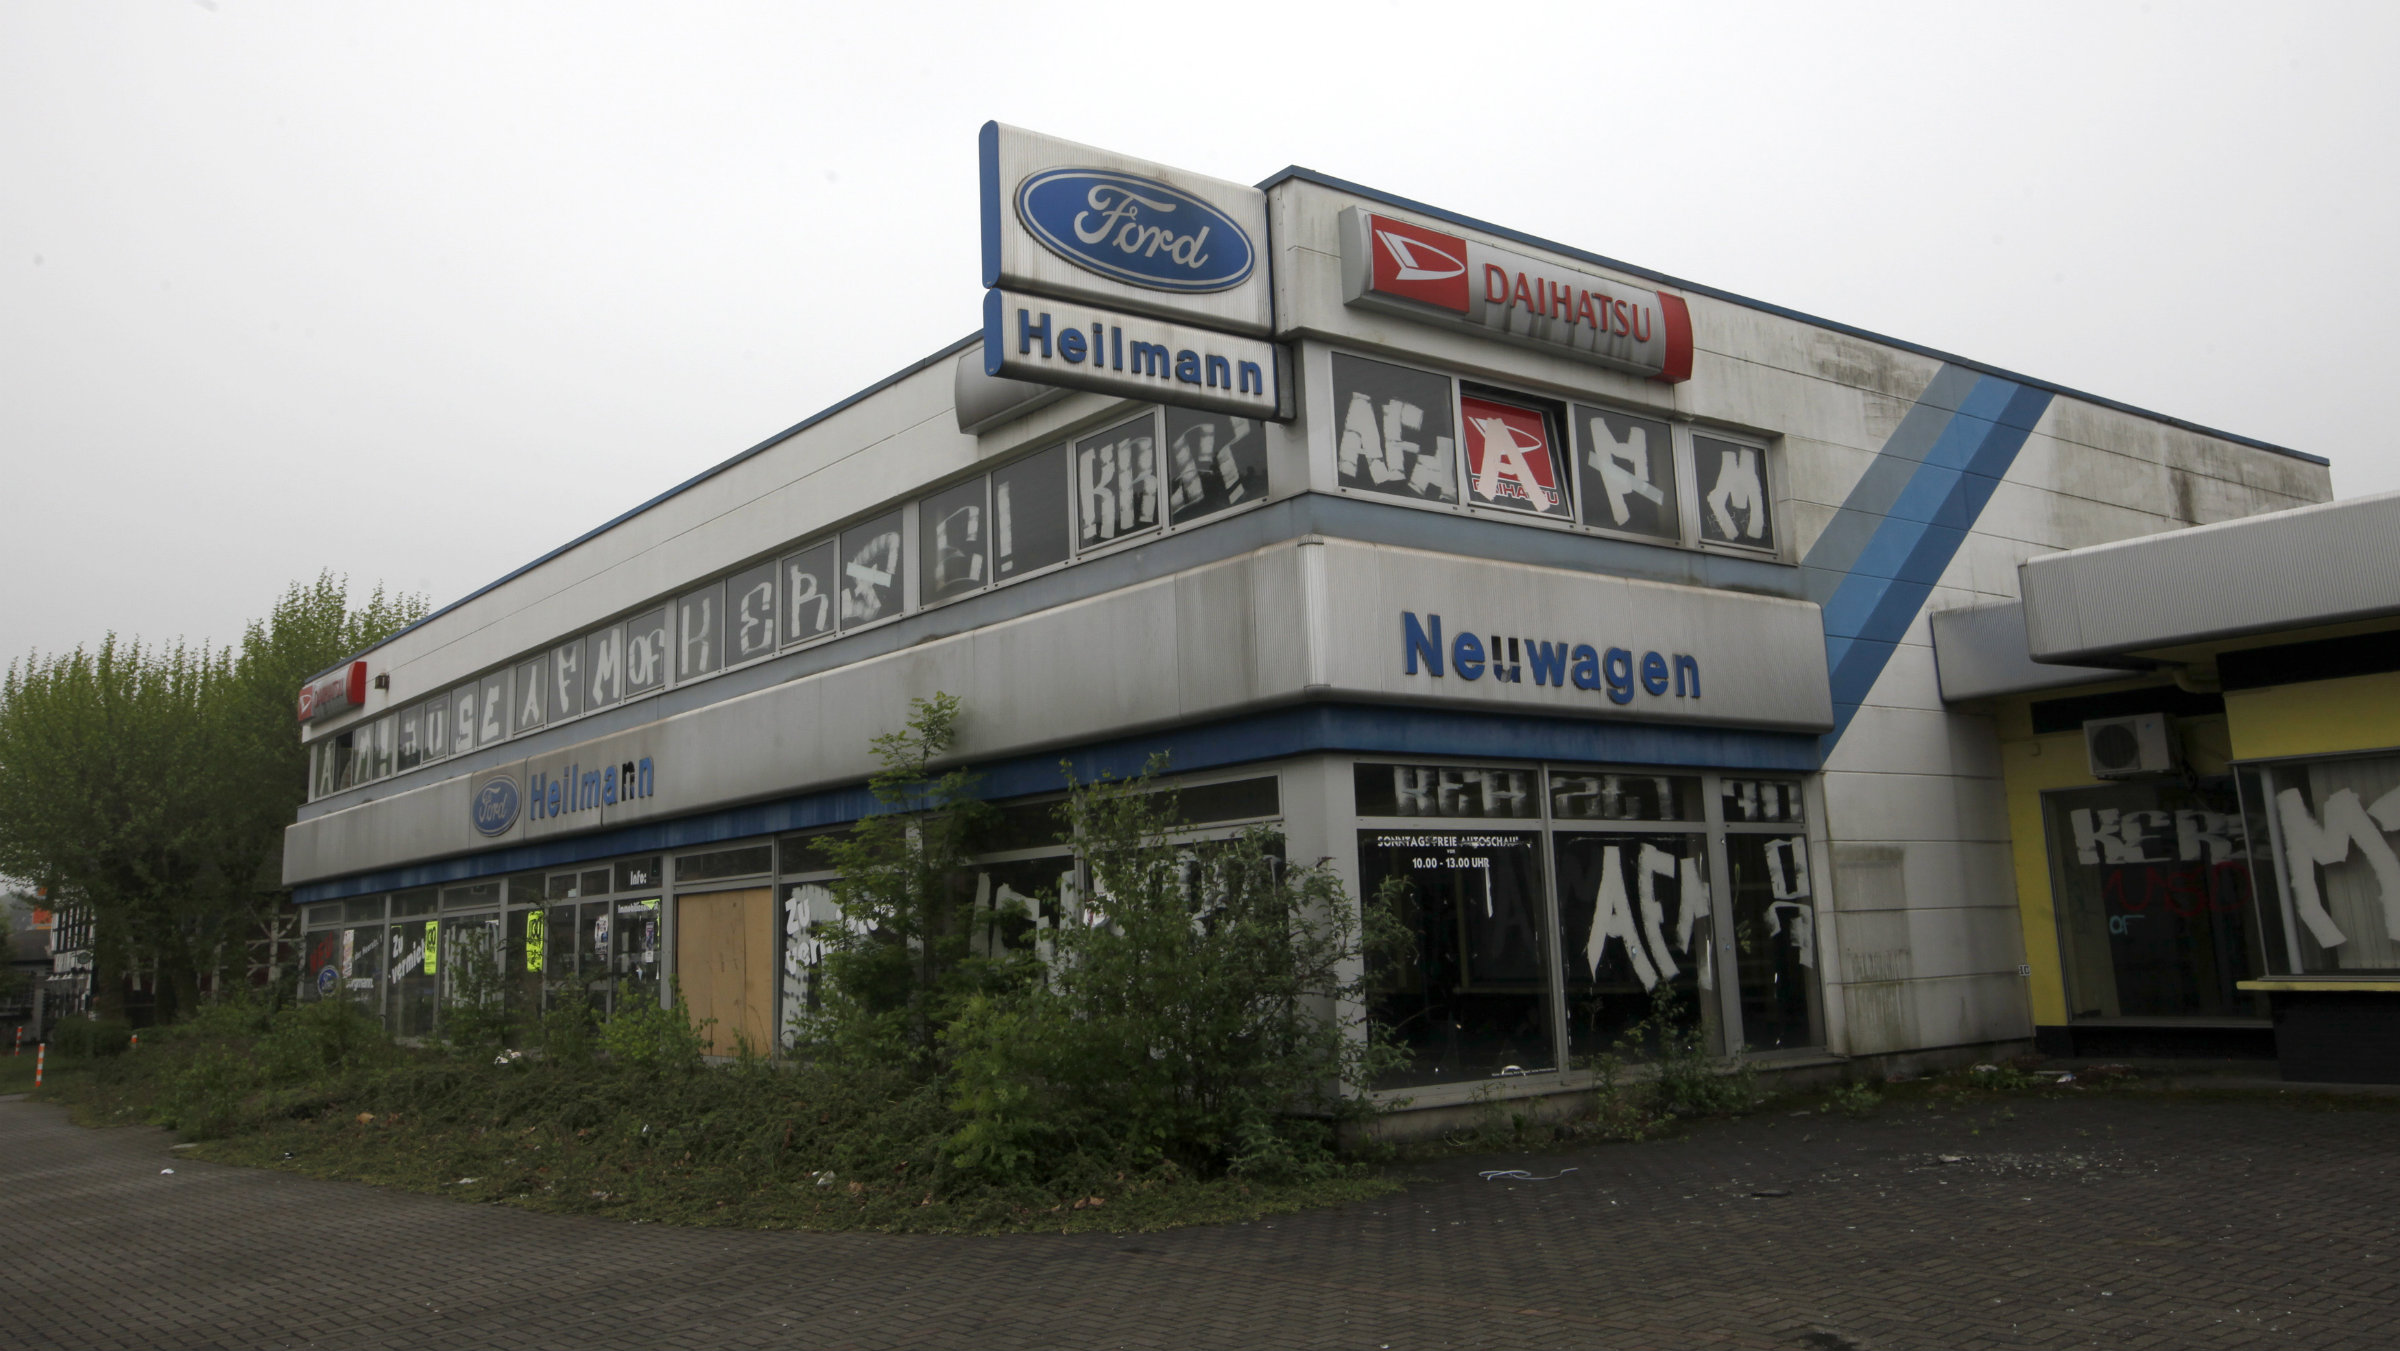 Auto dealers in Europe have seen better days.